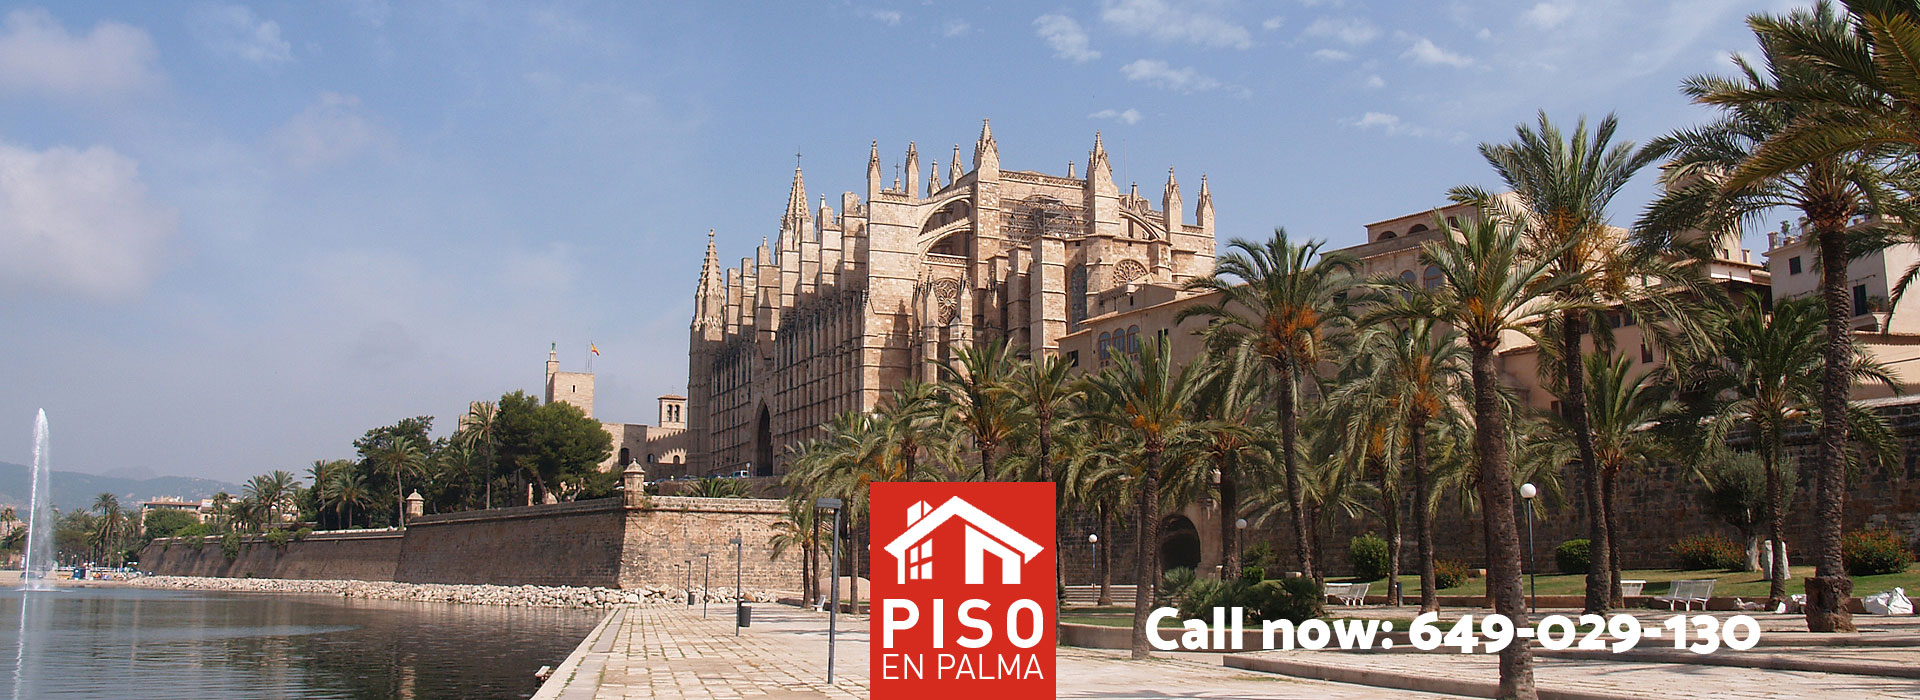 Flats for sale or to rent in Palma